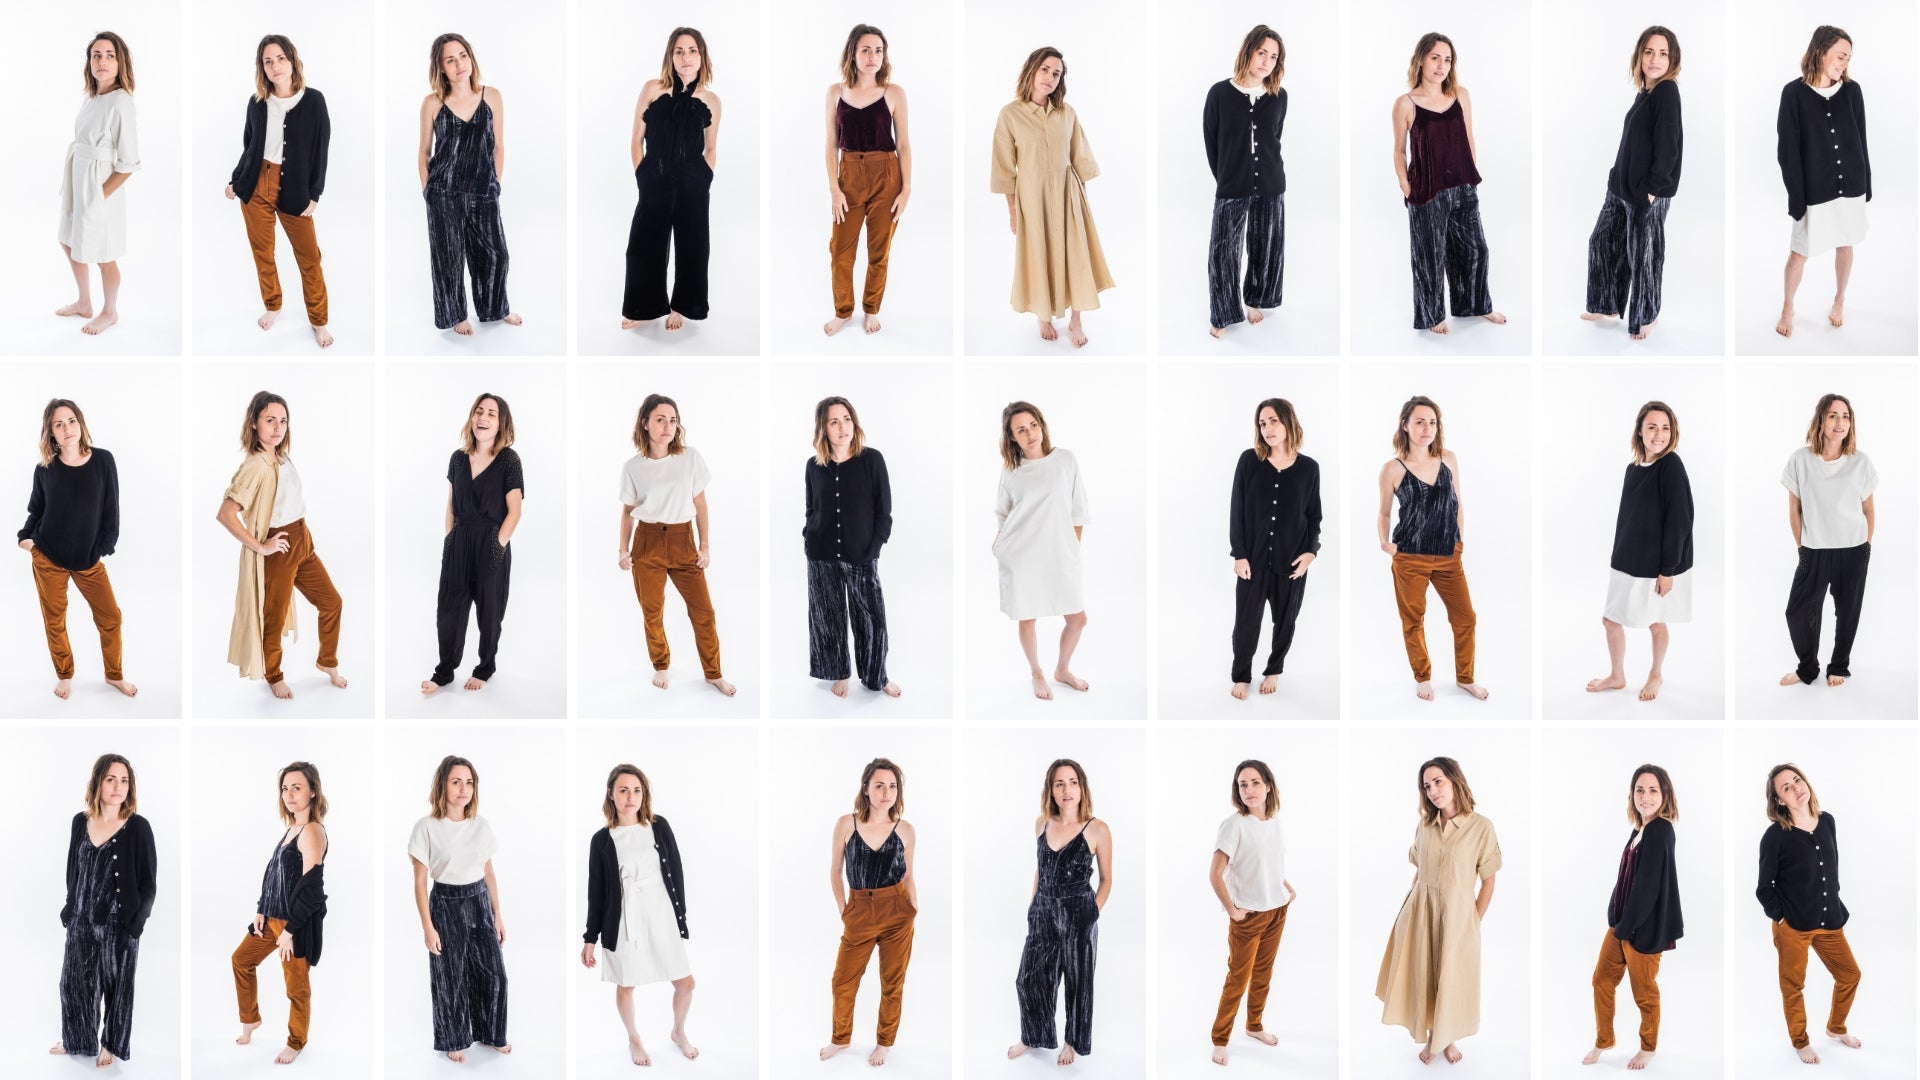 The Festive Capsule Wardrobe | Joon + Co. Ethical Fashion